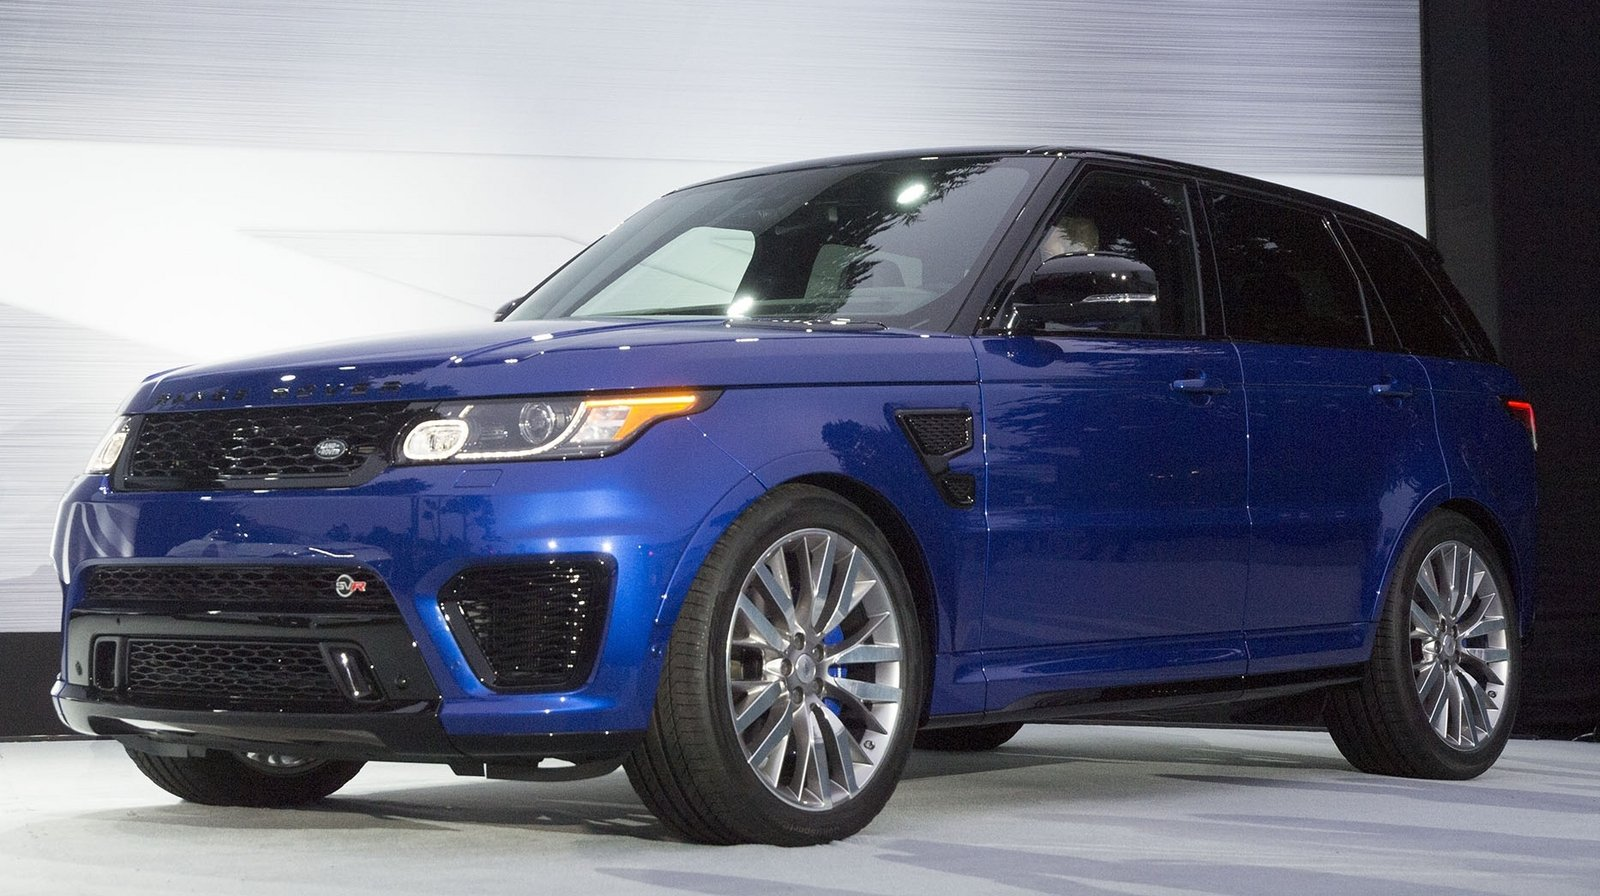 2015 land rover range rover sport svr picture 565061 car review top speed. Black Bedroom Furniture Sets. Home Design Ideas